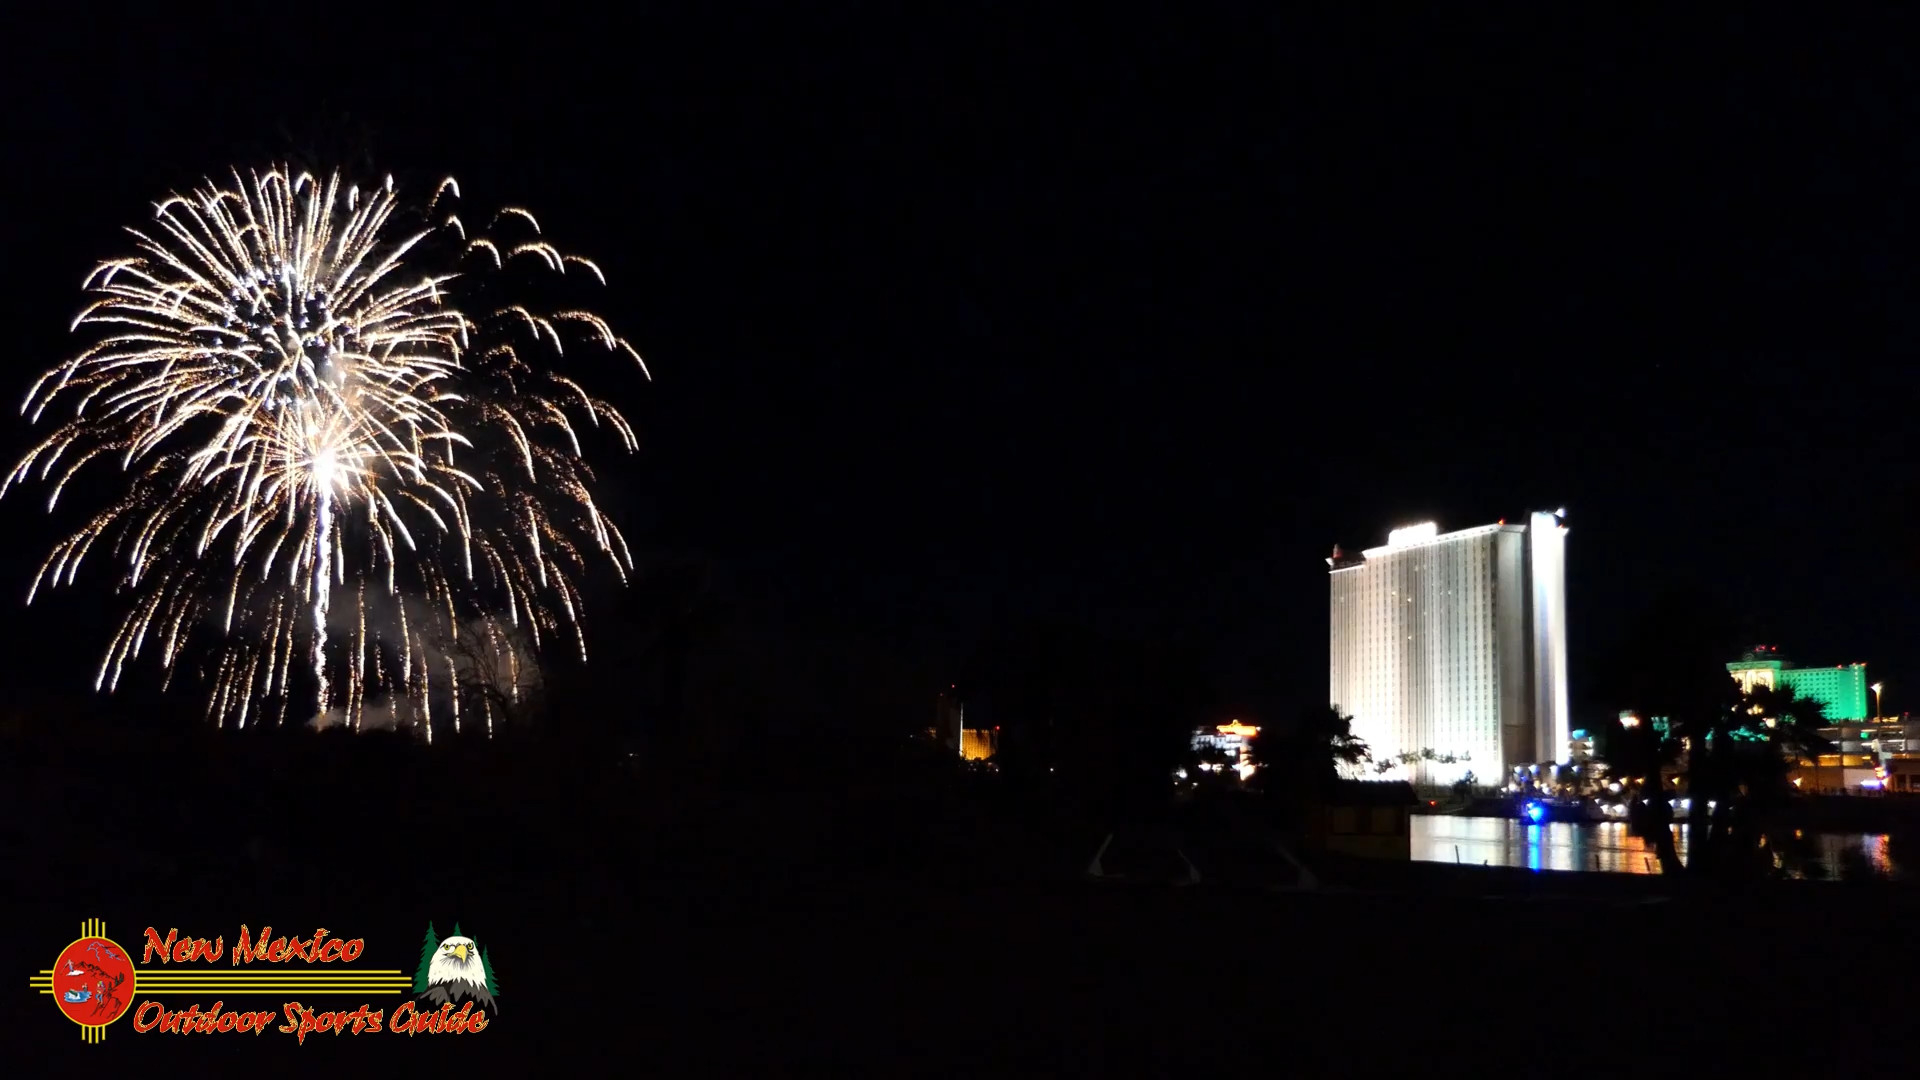 Colorado River Fireworks Laughlin, Nevada Christmas Night 2020 FZ2500